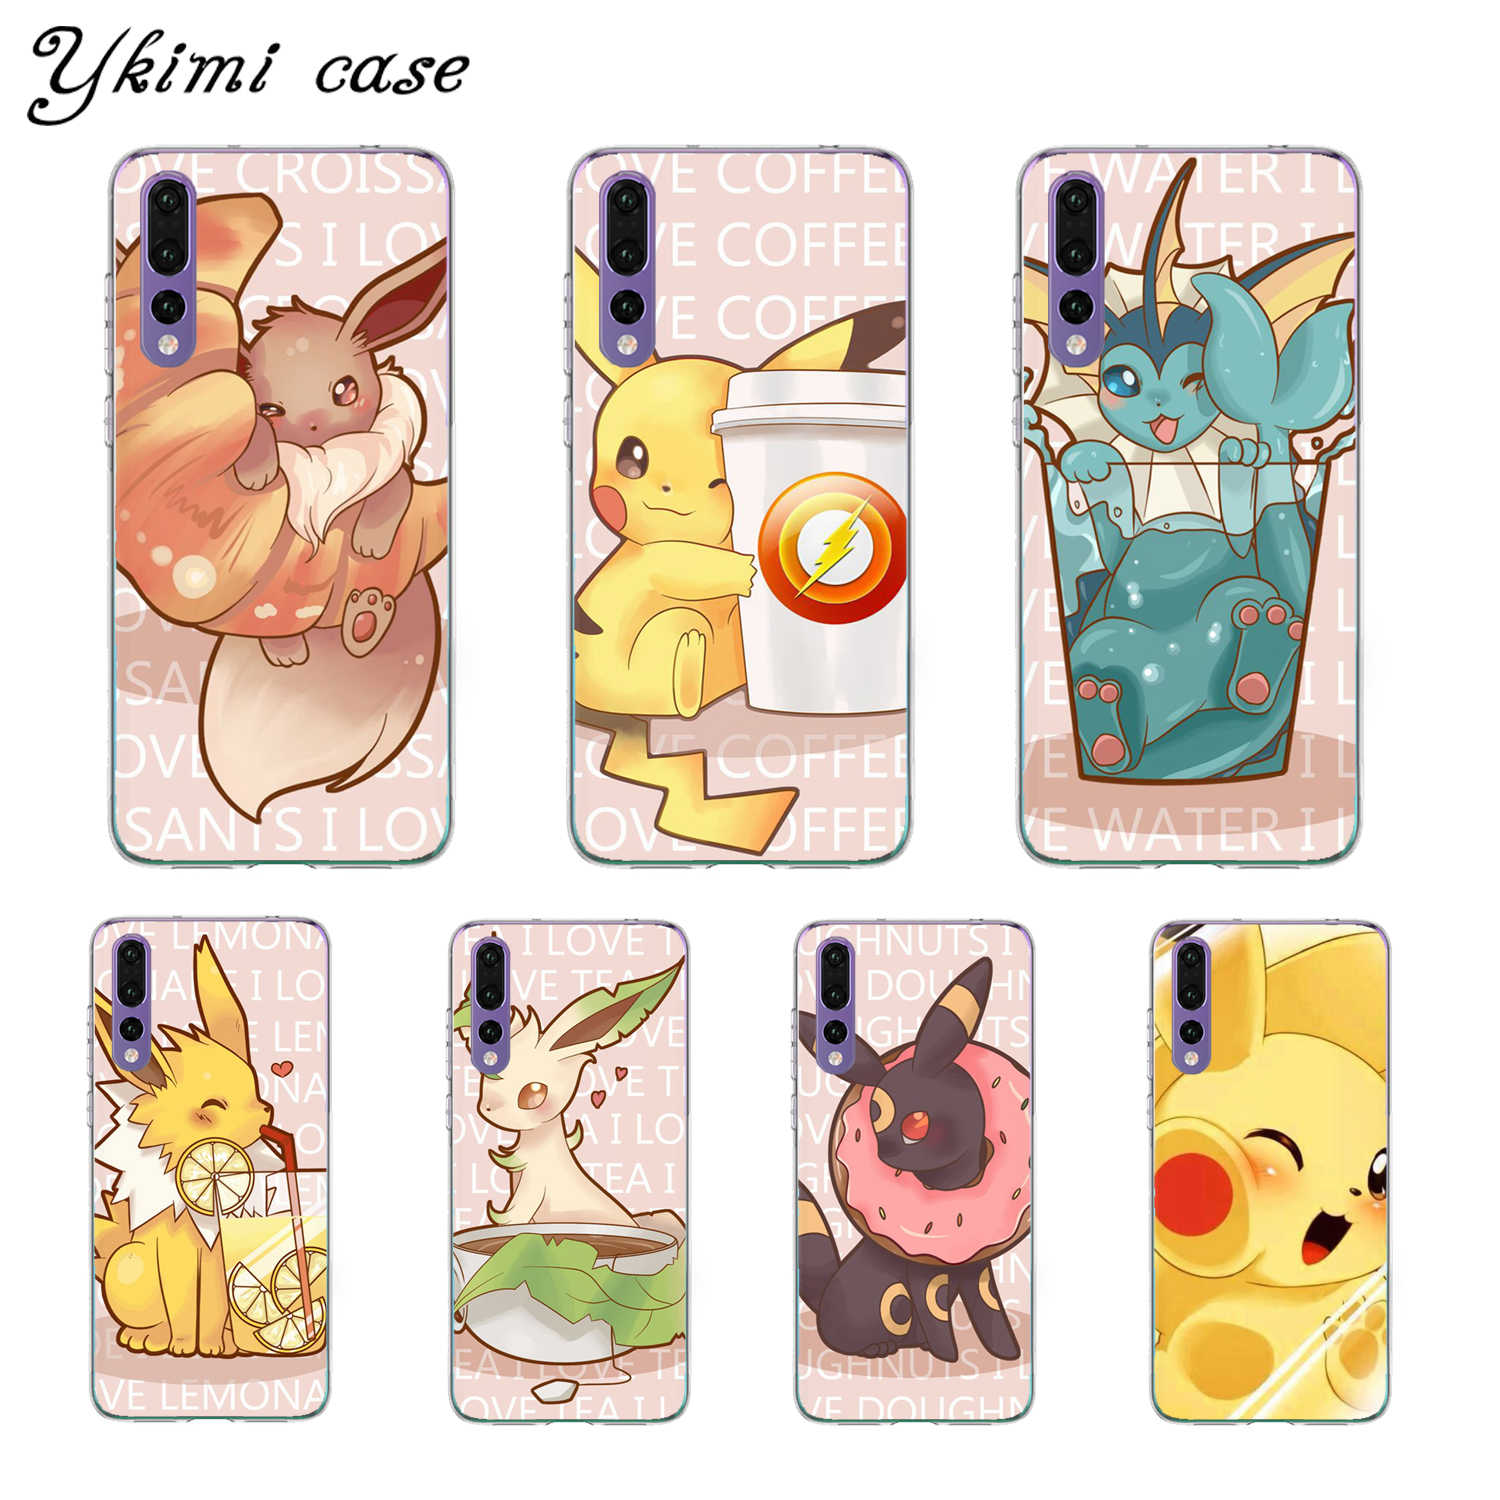 Cute Cartoon Pokemon Case For Huawei P8 P9 Lite 2017 P10 Plus P20 P30 Lite Pro Case Cover Transparent Soft Silicone TPU